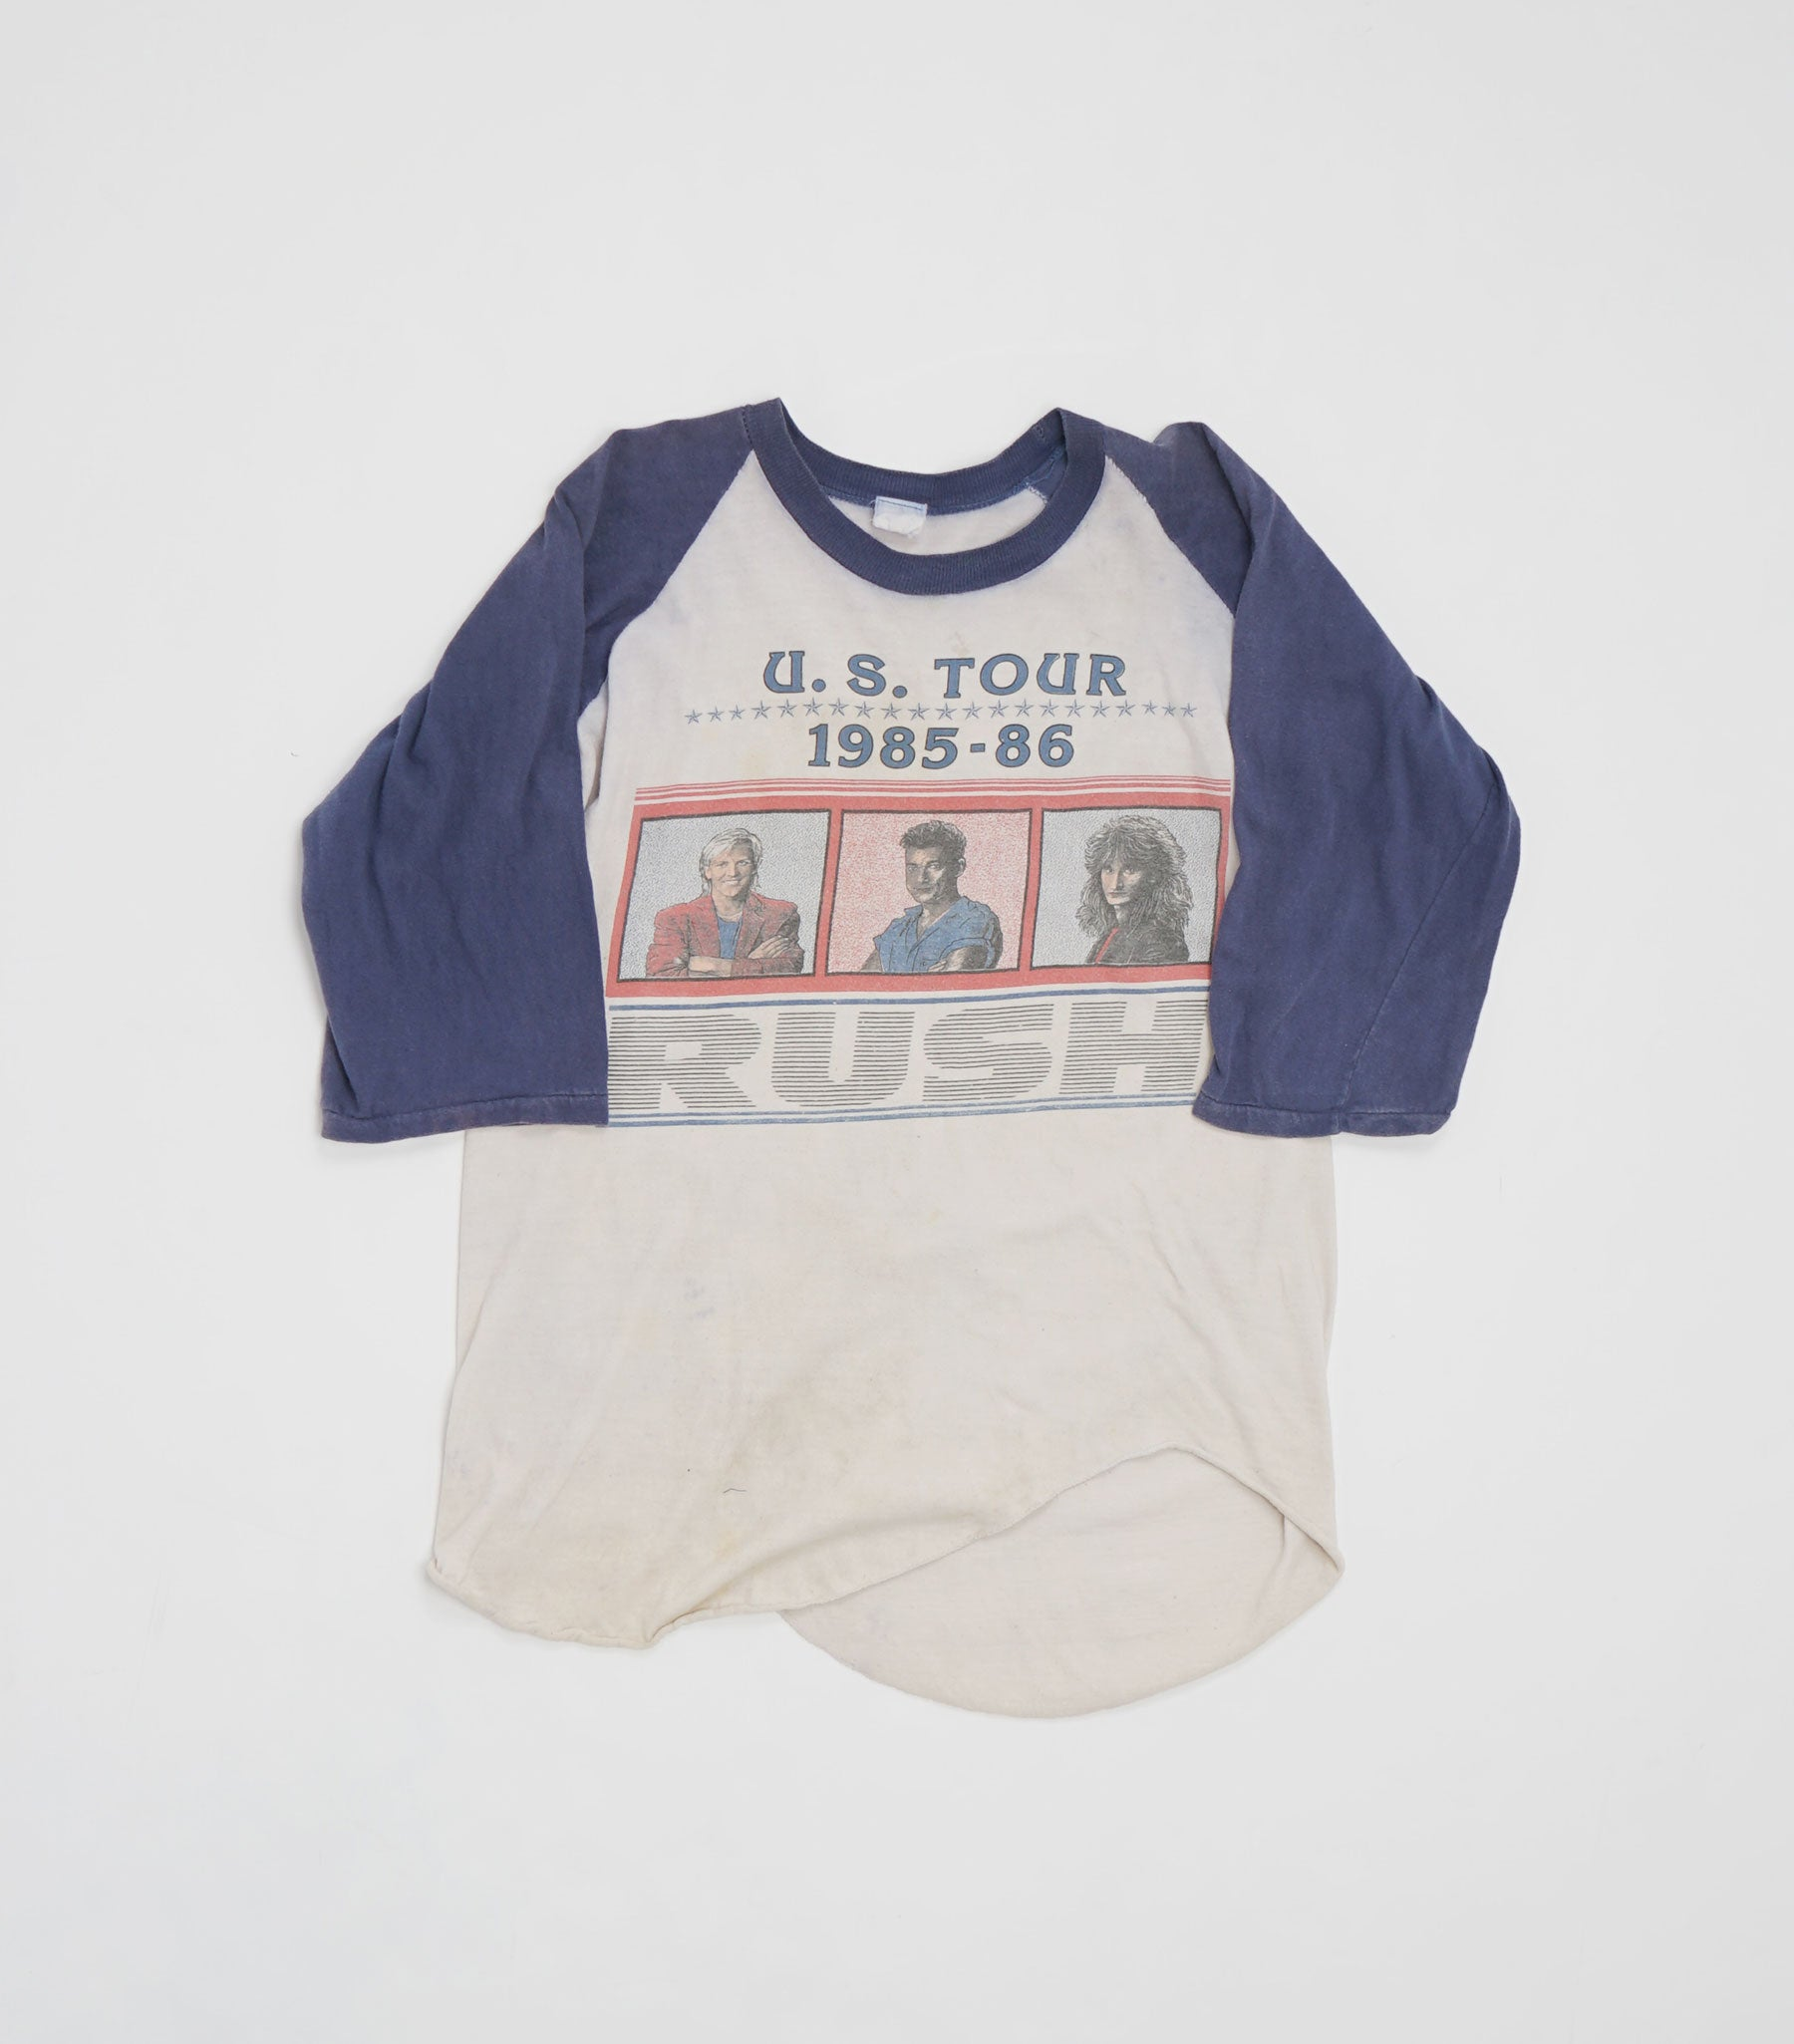 1985 Rush US Tour Baseball Tee